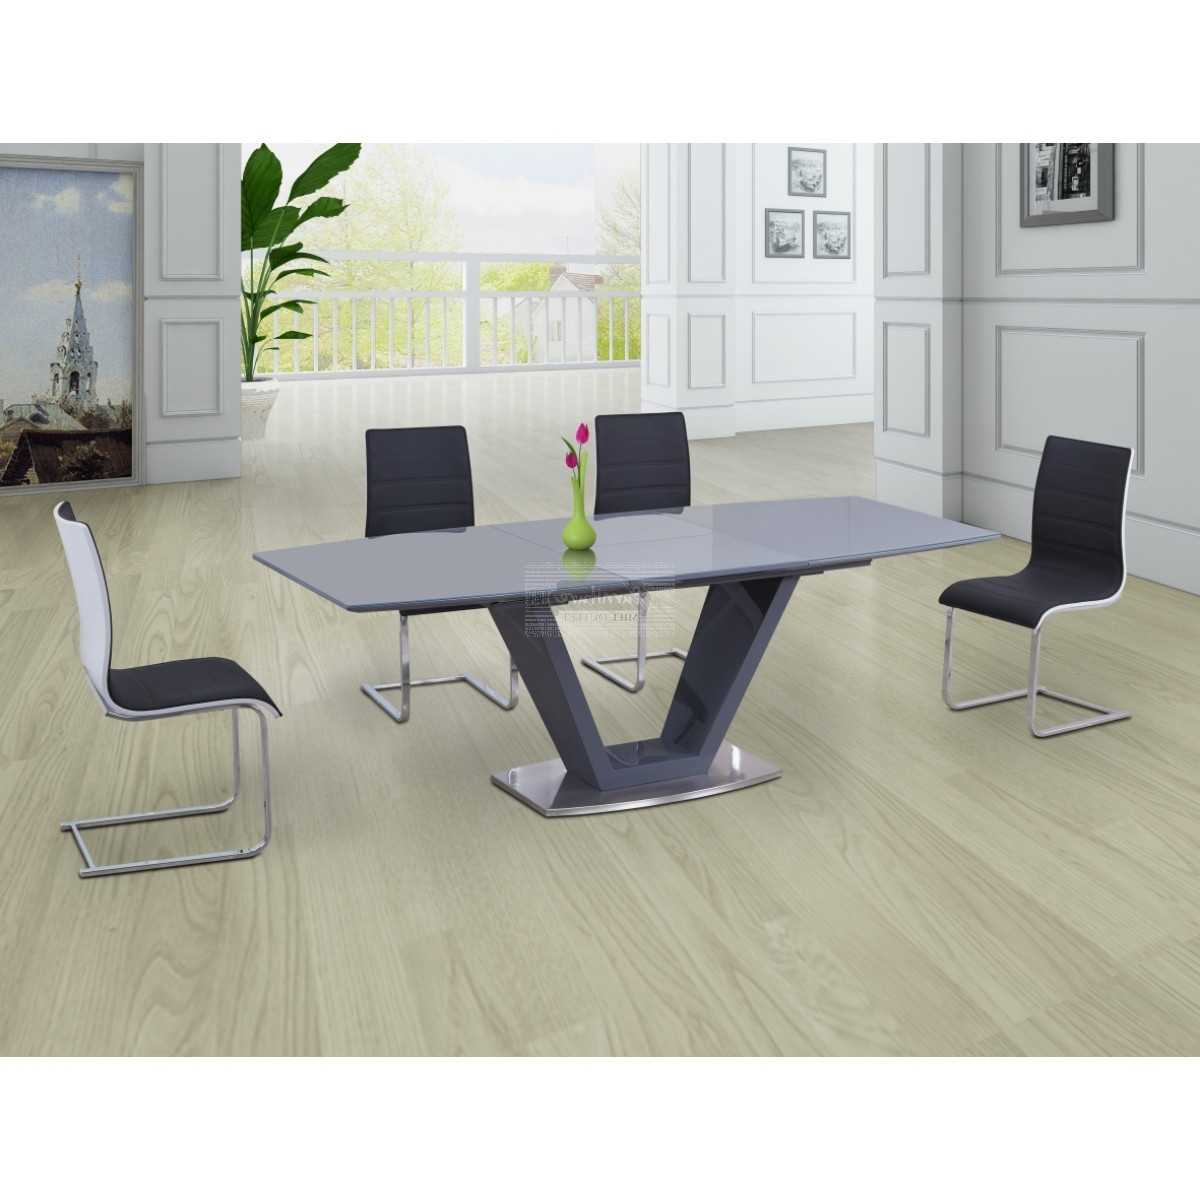 High Gloss White Extending Dining Tables Inside Well Known Lorgato Grey High Gloss Extending Dining Table – 160Cm To 220Cm (Gallery 22 of 25)